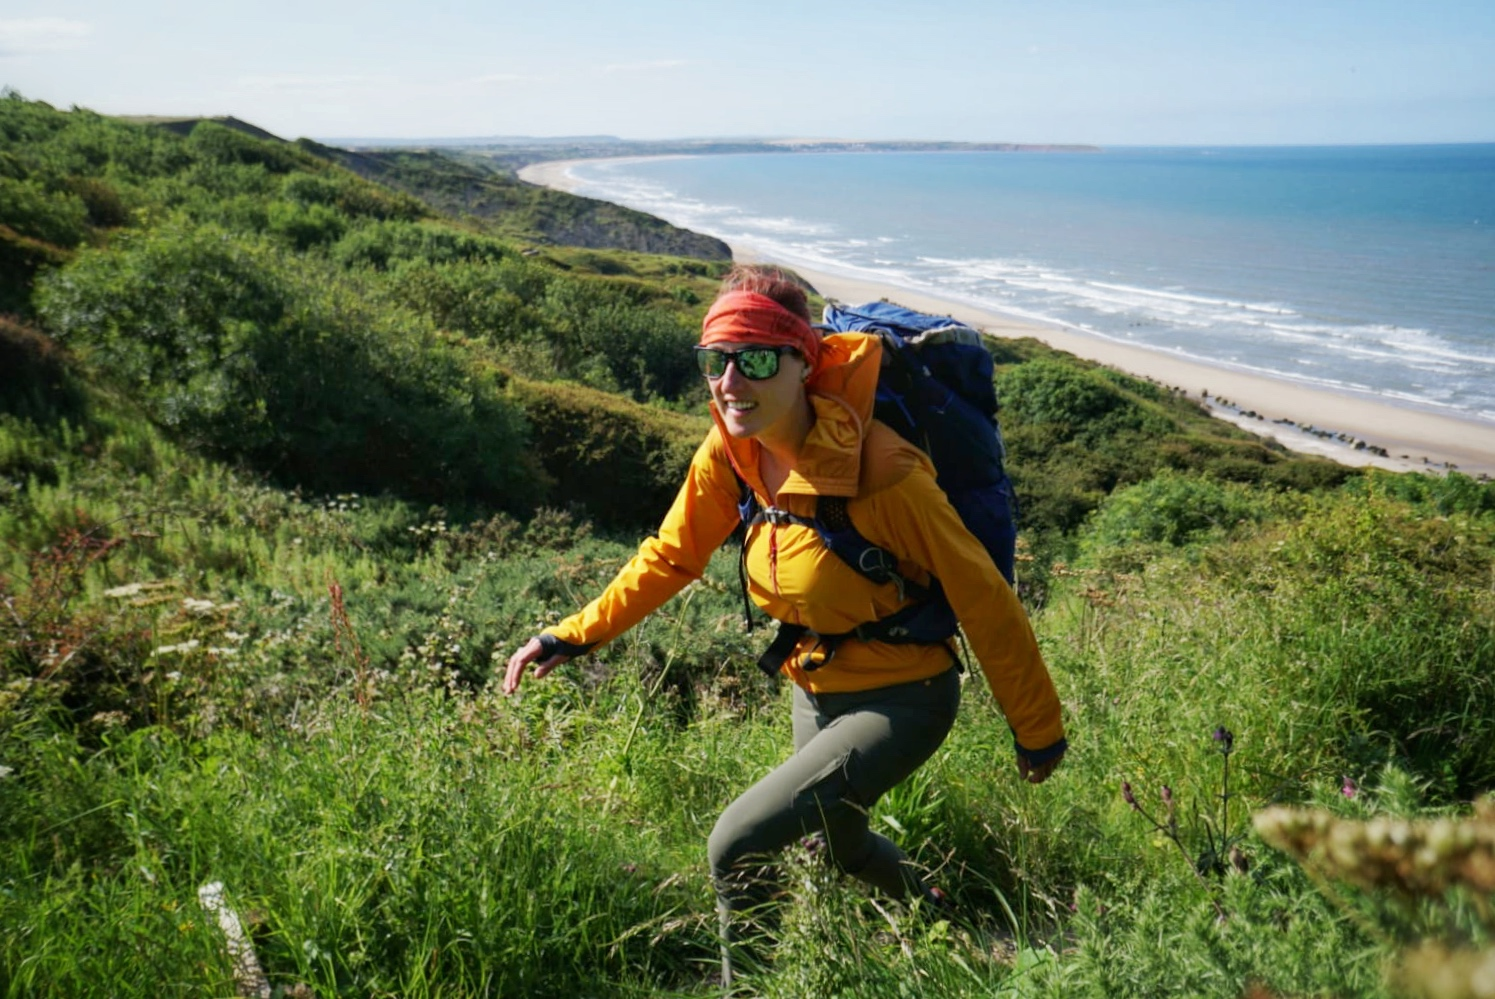 Scrambling from the cliff edge to the beach at Filey. According to the map there's a footpath!